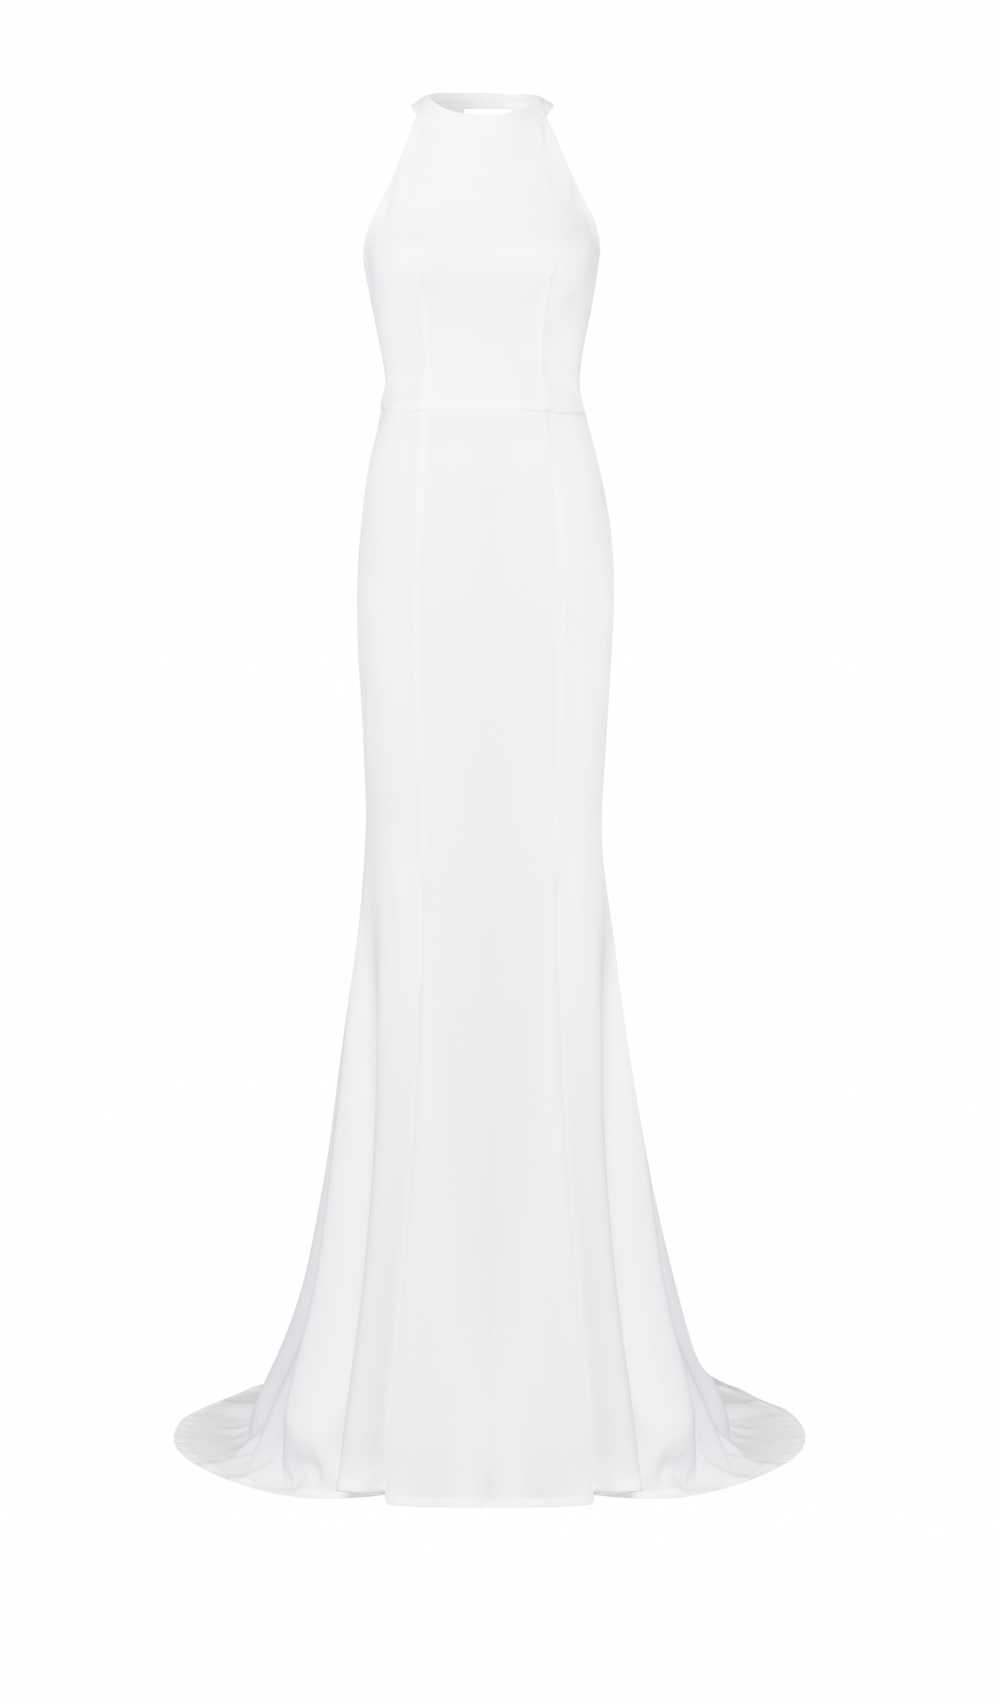 form-fitted wedding dress from Kaviar Gauche